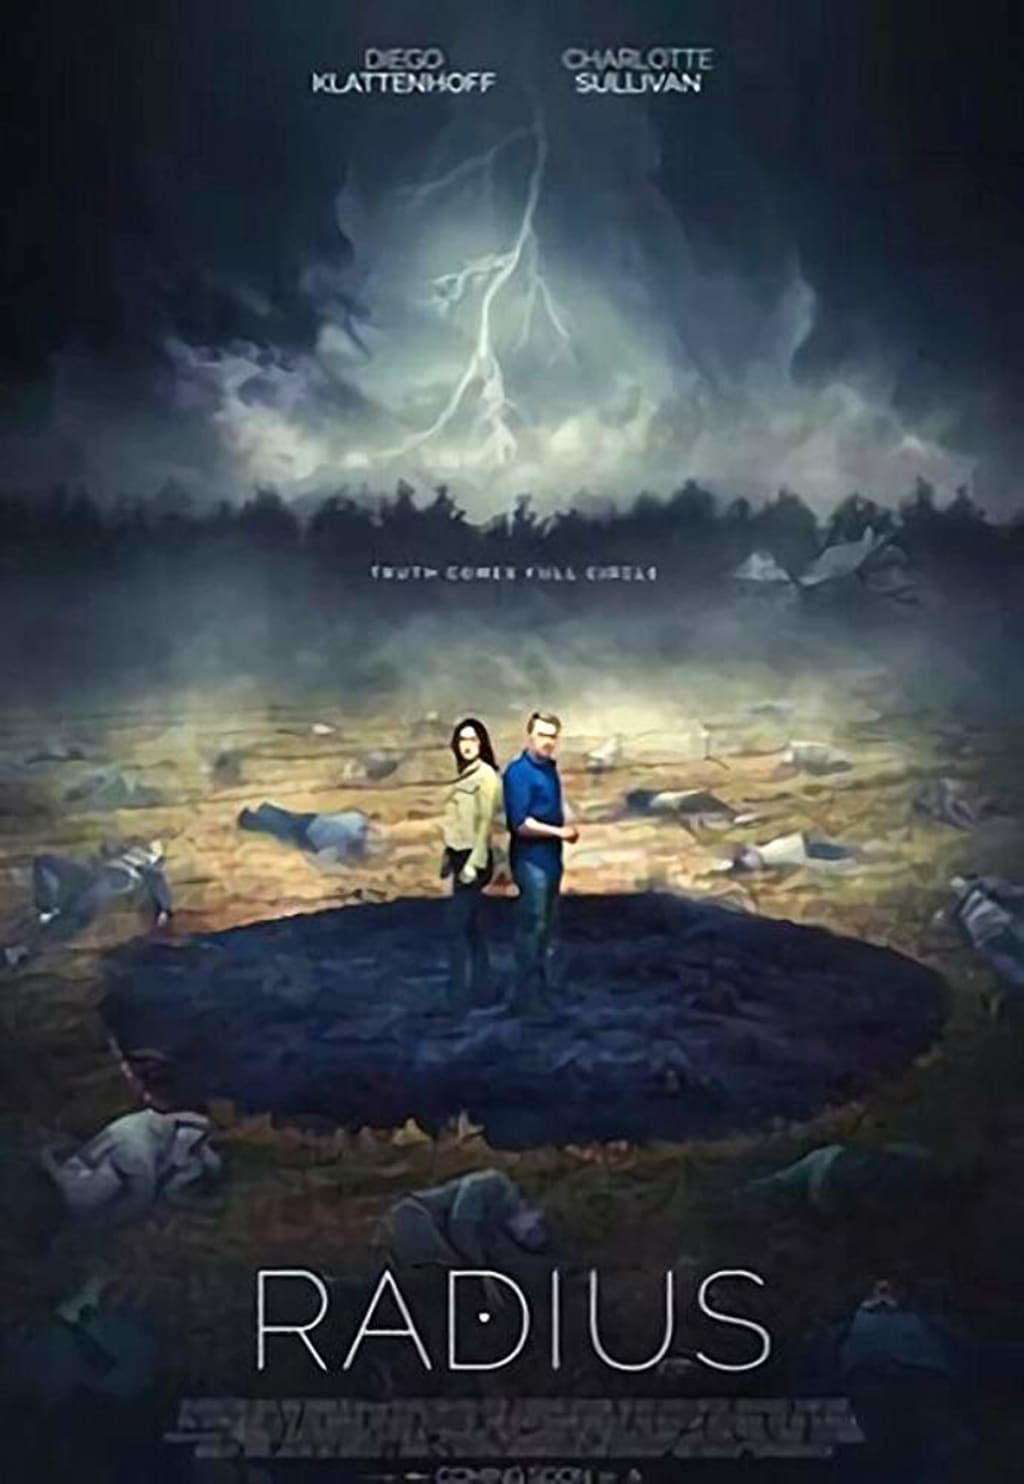 Reed Alexander's Horror Review of 'Radius' (2017)